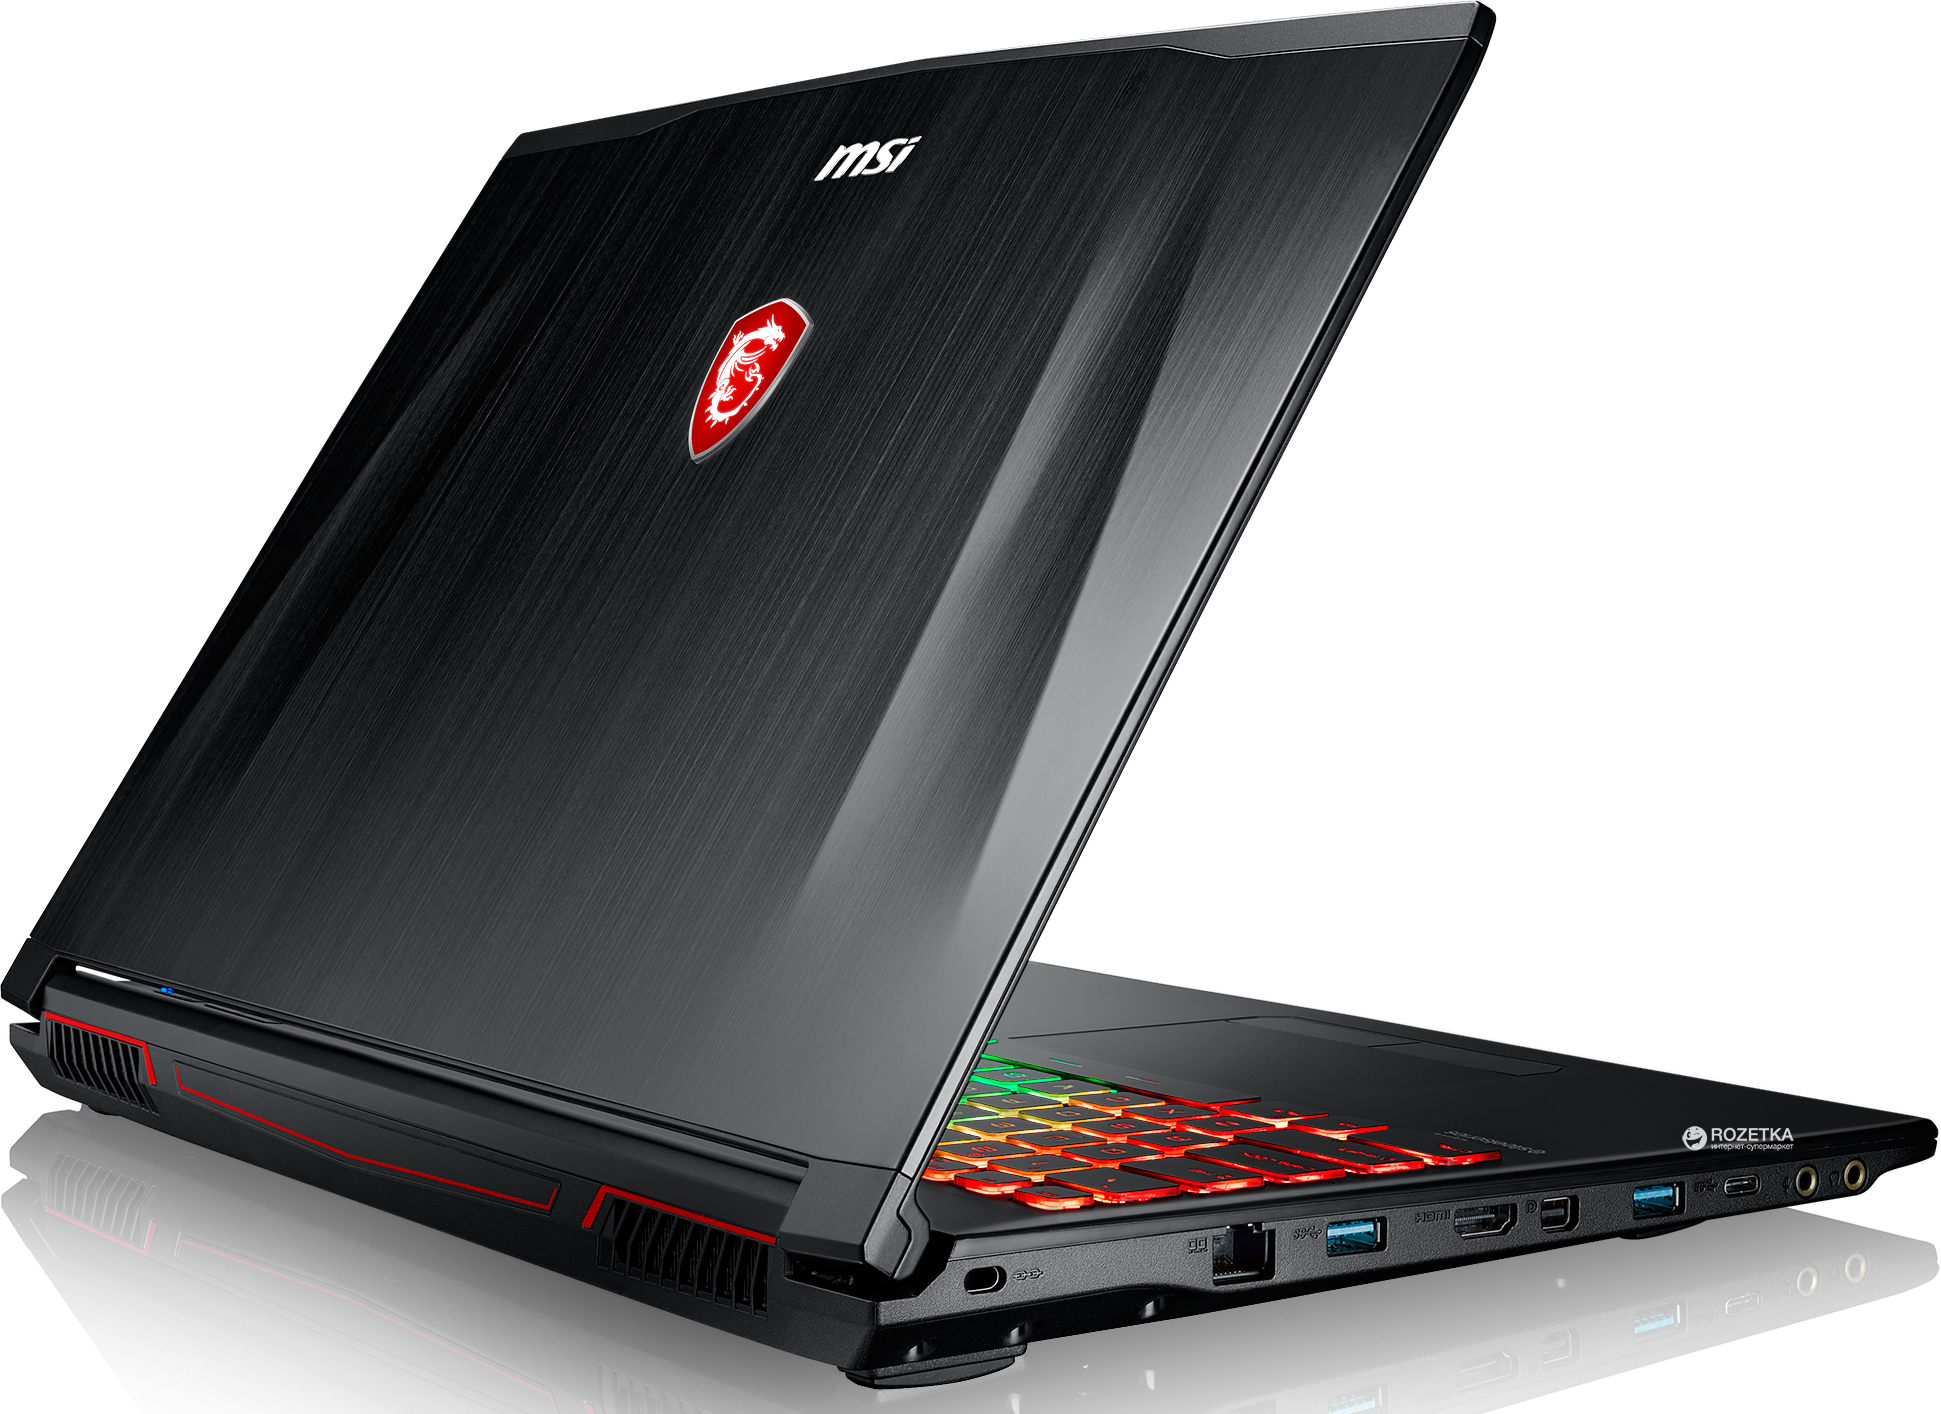 Ноутбук MSI GP62M 7RDX-1659RU 9S7-16J9B2-1659 (Intel Core i7-7700HQ 2.8 GHz/8192Mb/1000Gb/nVidia GeForce GTX 1050 4096Mb/Wi-Fi/Bluetooth/Cam/15.6/1920x1080/Windows 10 64-bit)